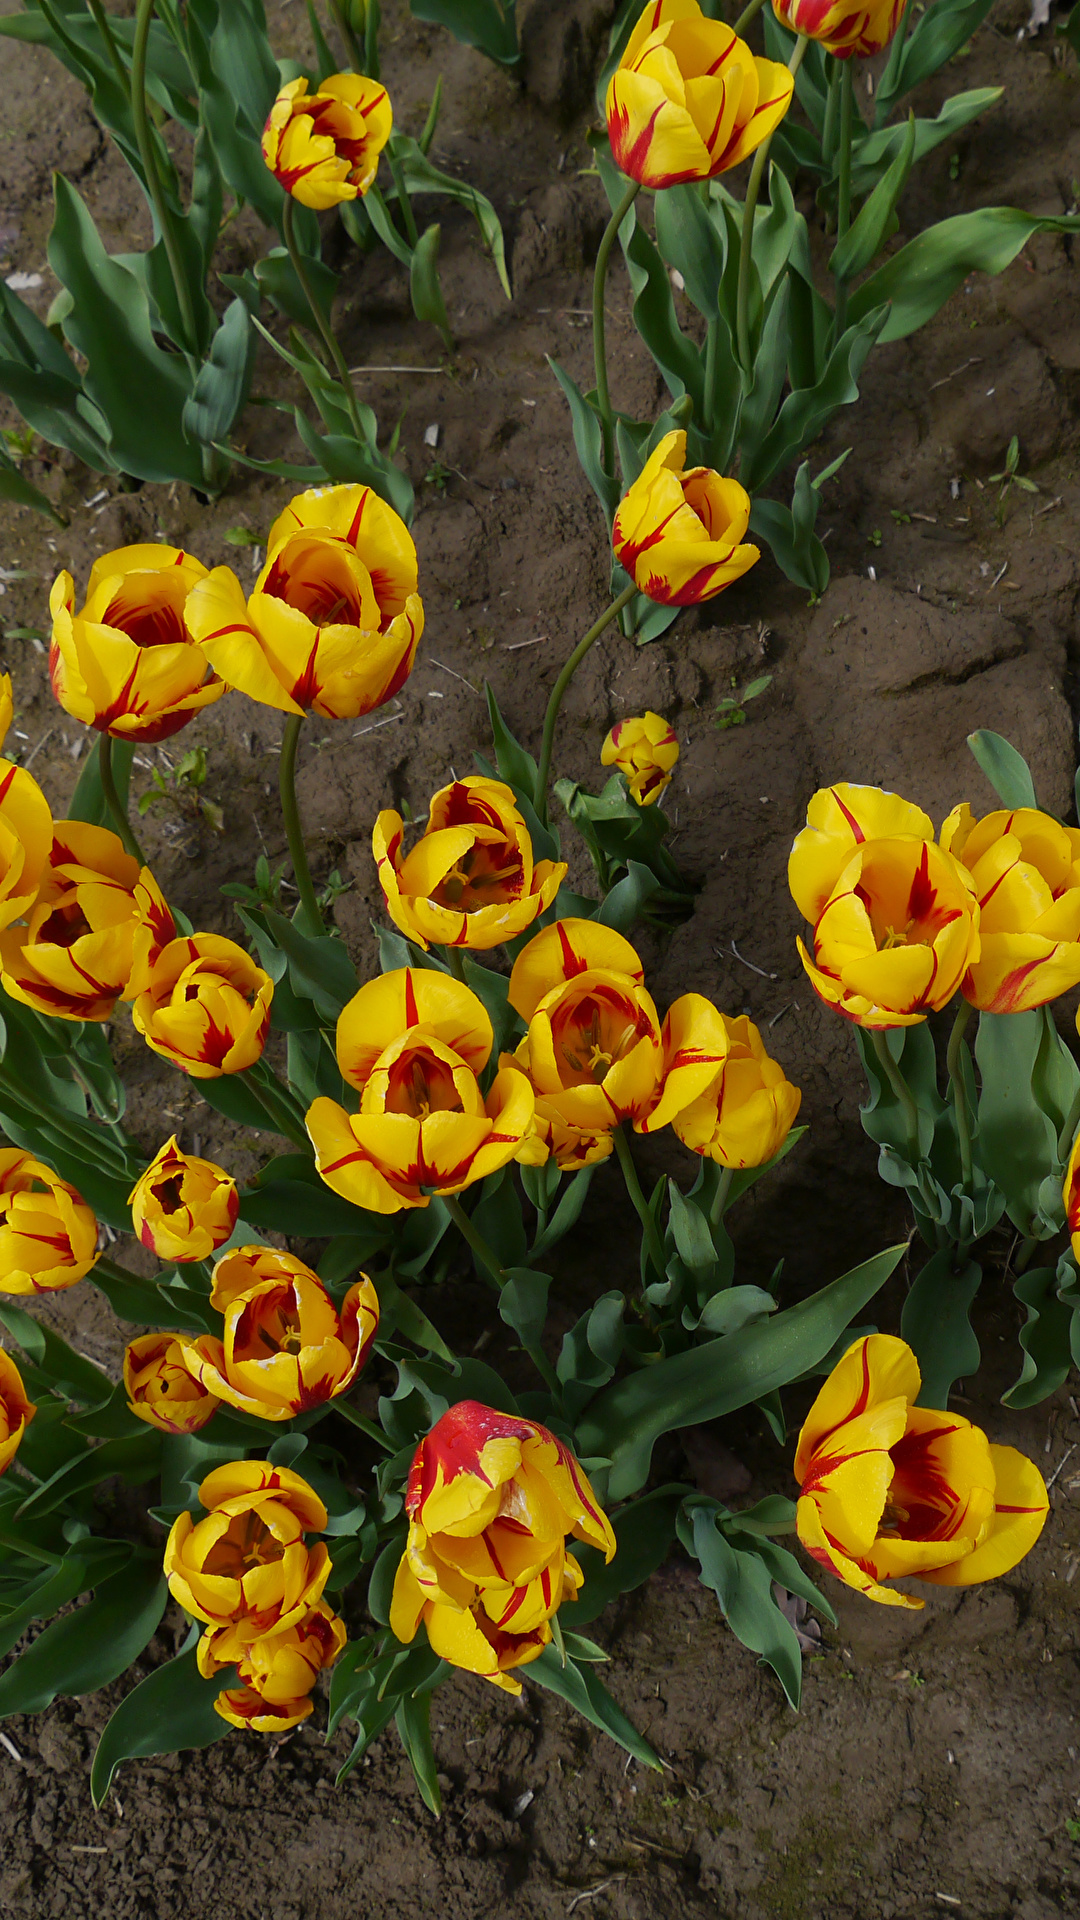 Pictures tulip Yellow Flowers From above 1080x1920 for Mobile phone Tulips flower